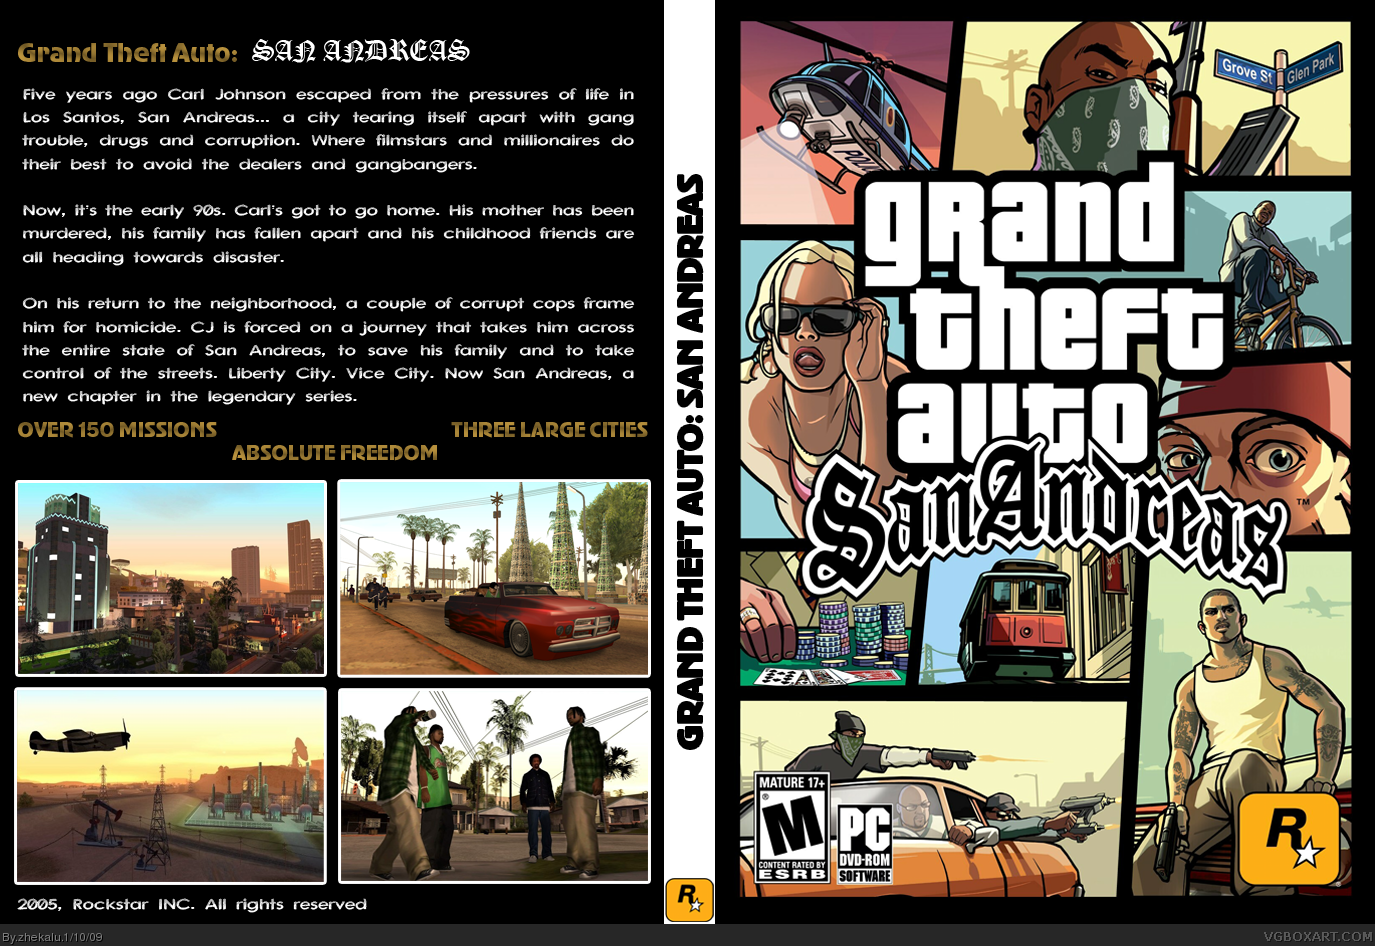 Gta 6 Cover: Grand Theft Auto: San Andreas PC Box Art Cover By Zhekalu